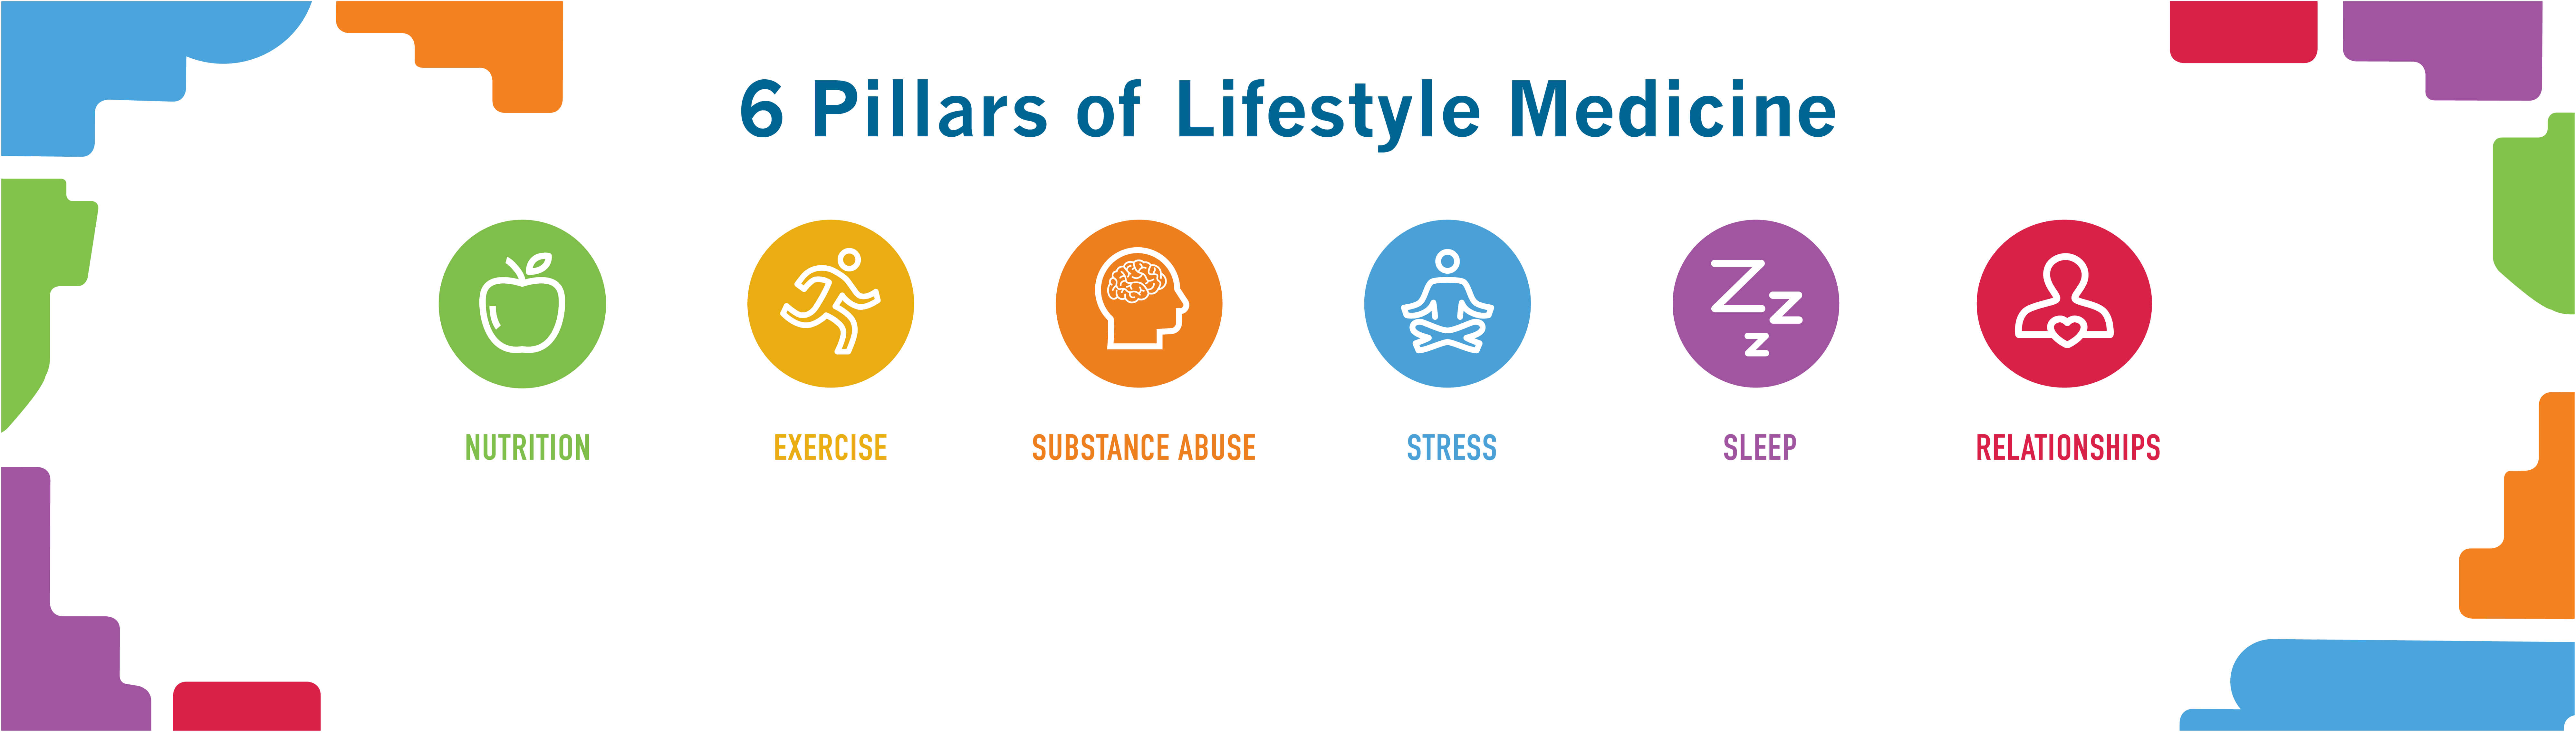 6 Pillars of Lifestyle Medicine